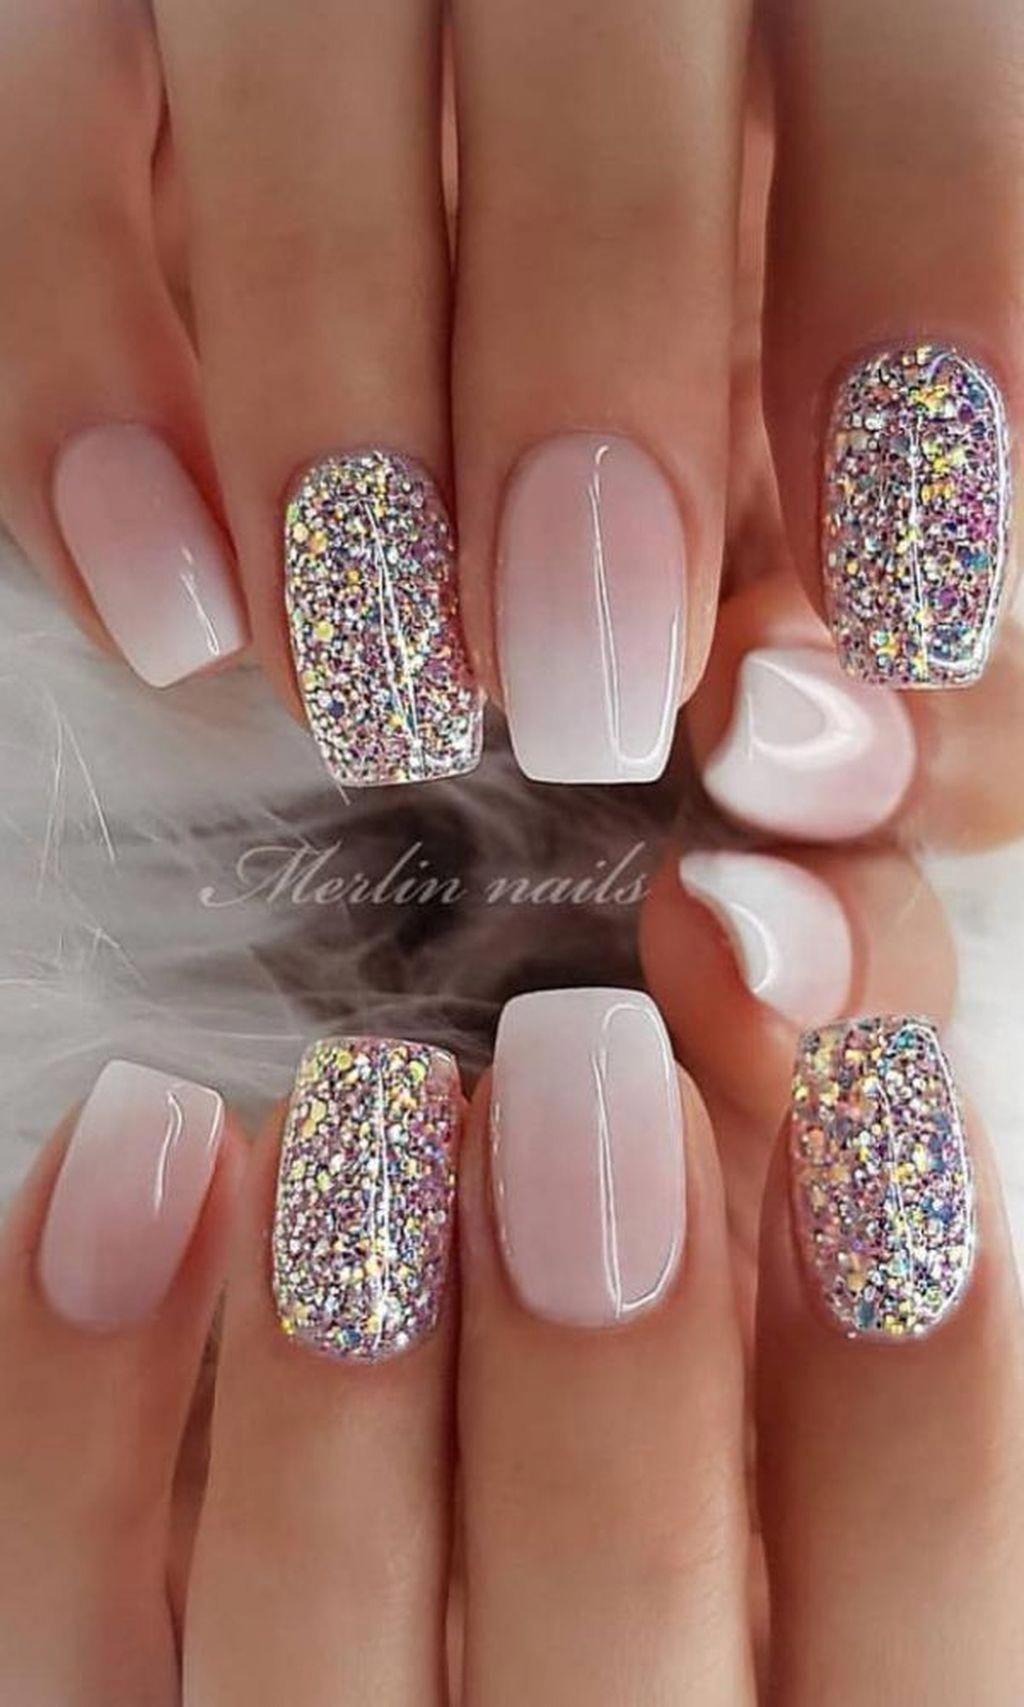 30 Amazing Spring And Summer Nails Art Designs Ideas For 2019 Summernails Chic Nail Designs Chic Nails Nail Designs Glitter